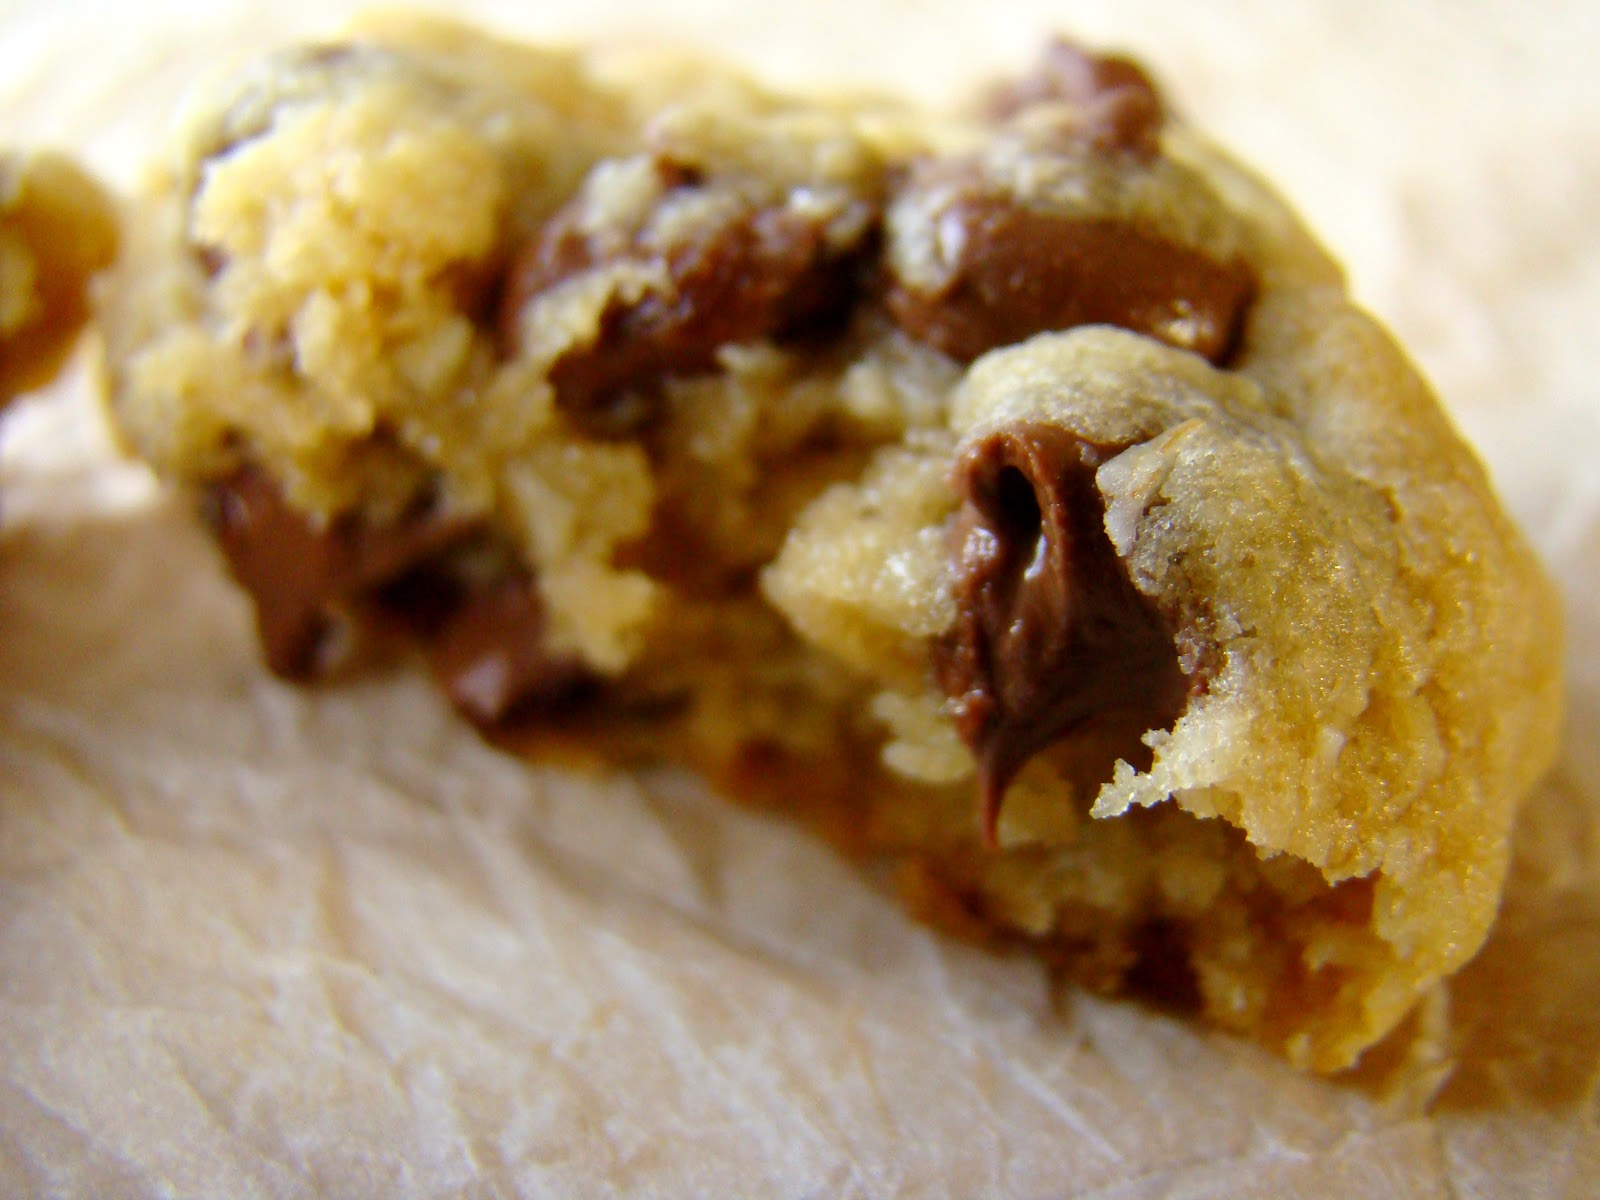 Family Feedbag: Best ever chocolate chip cookies (gift-giving mix!)